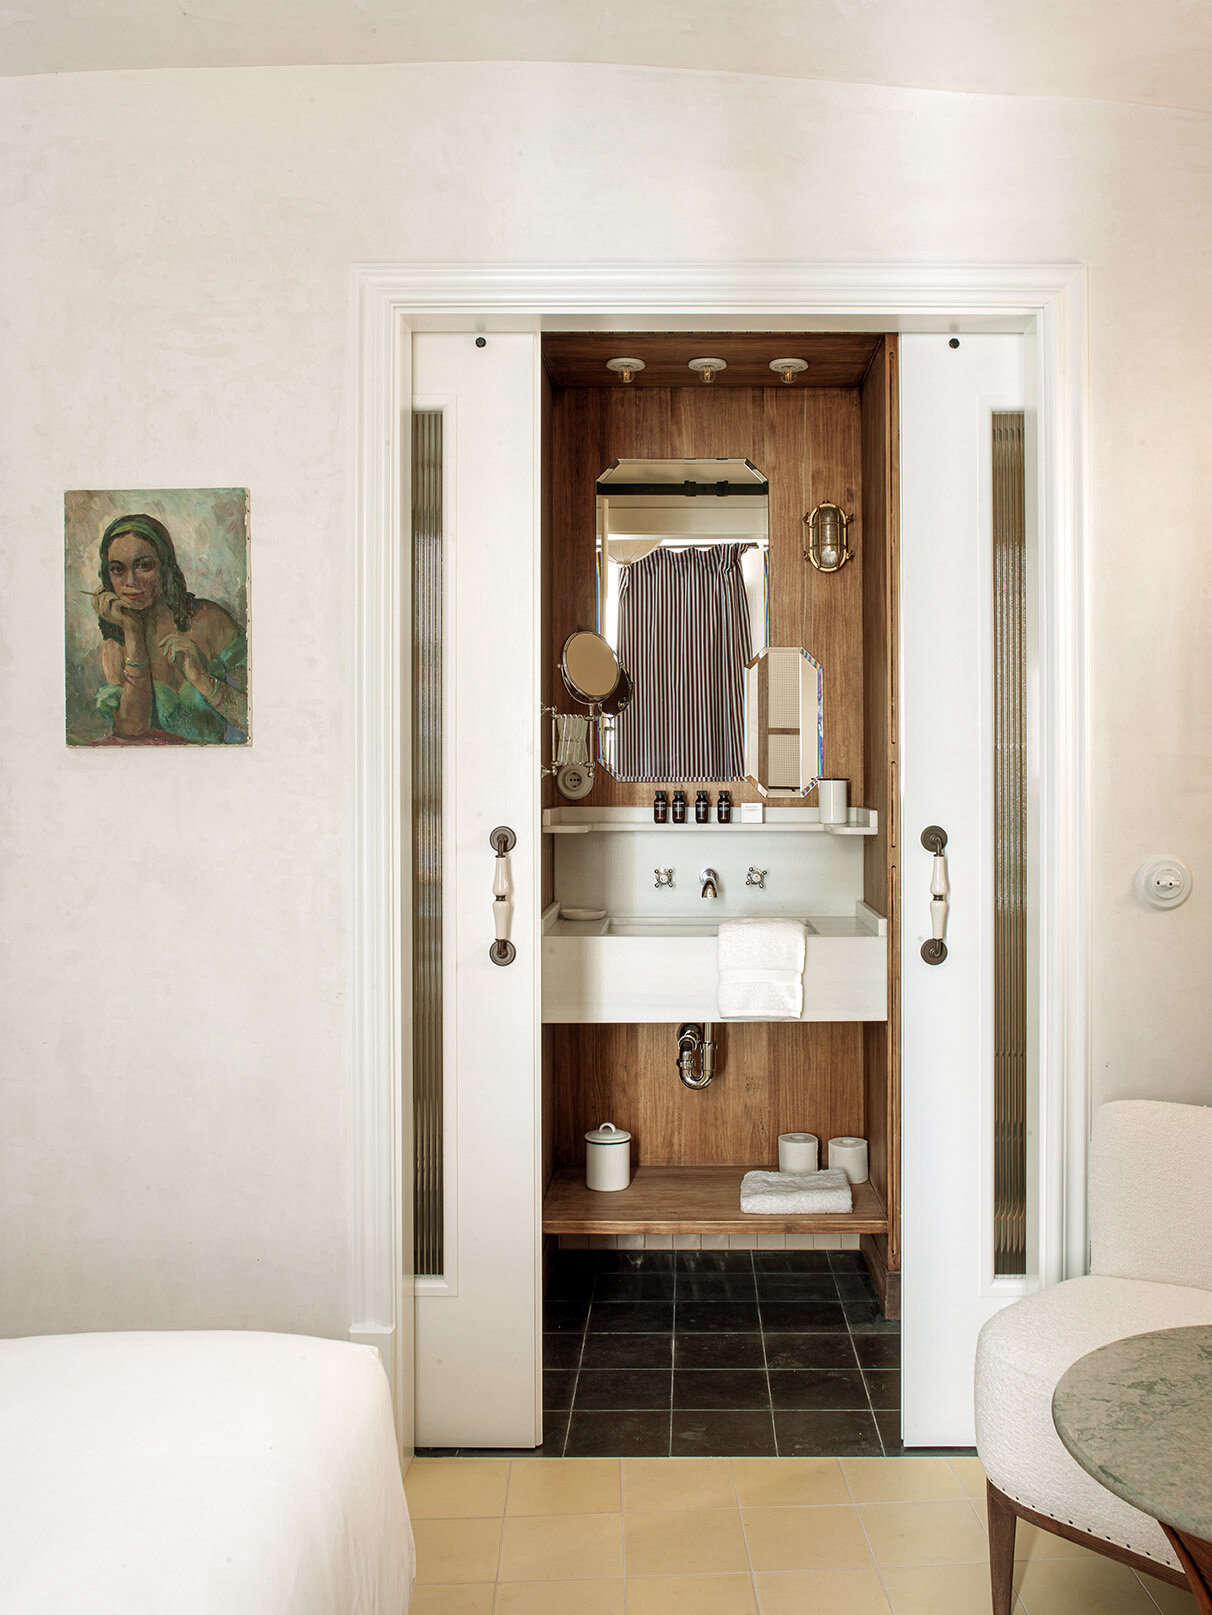 A wood-paneled bathroom with sliding glass doors and a nautical bulkhead light. The bathroom toiletries (from Grown Alchemist)—and also the cleaning products used throughout—are organic and biodegradable.